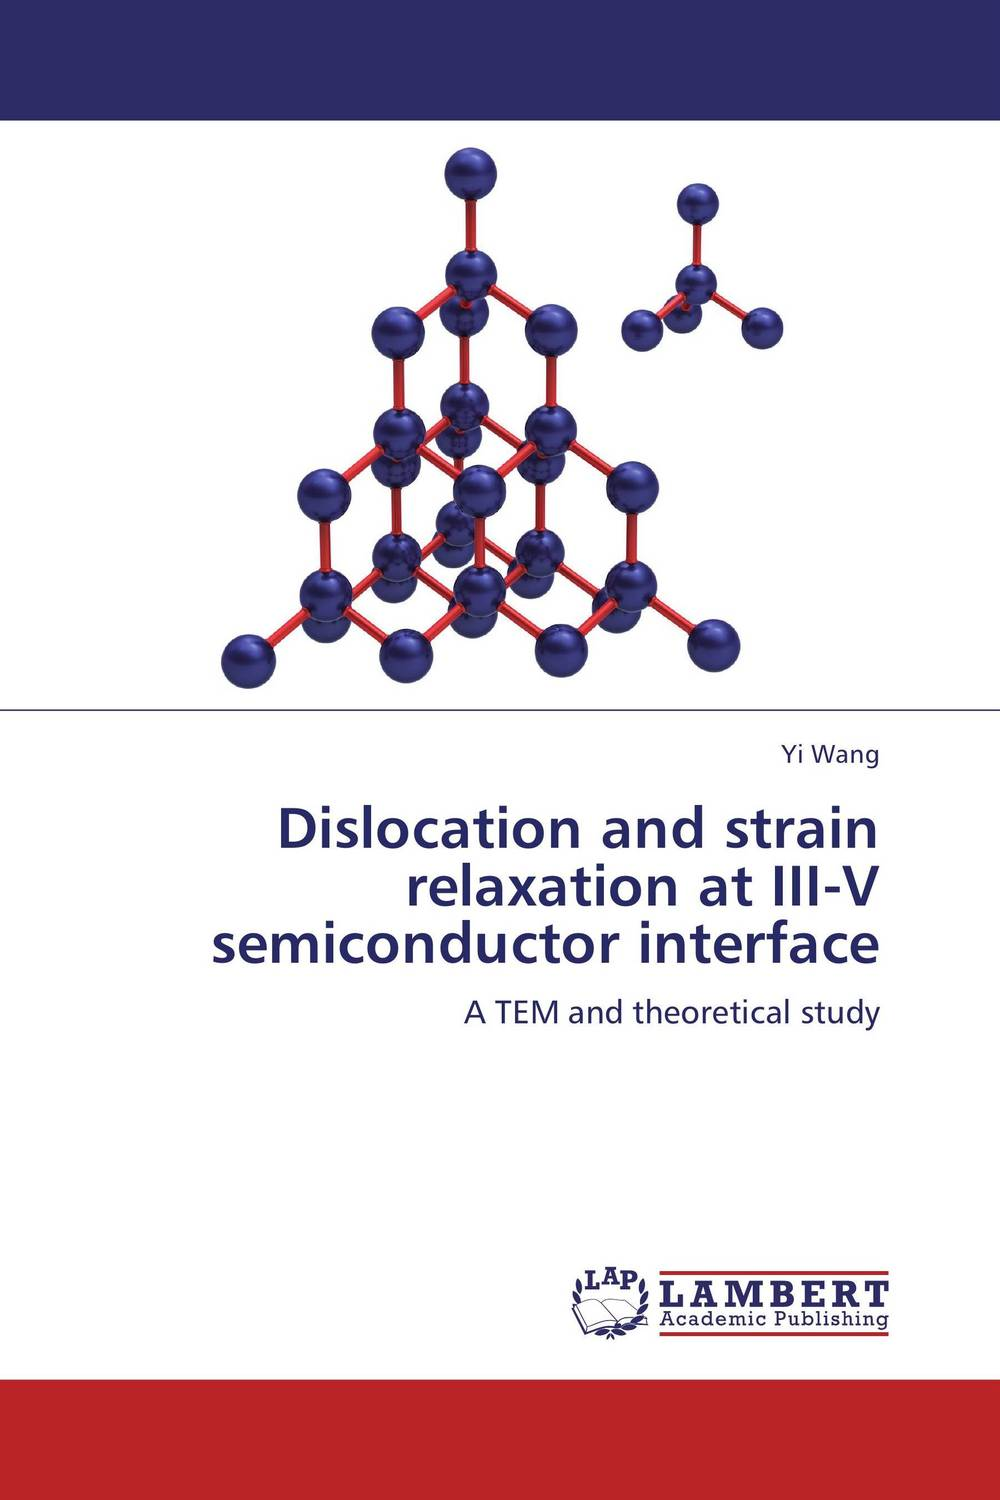 Dislocation and strain relaxation at III-V semiconductor interface the role of evaluation as a mechanism for advancing principal practice